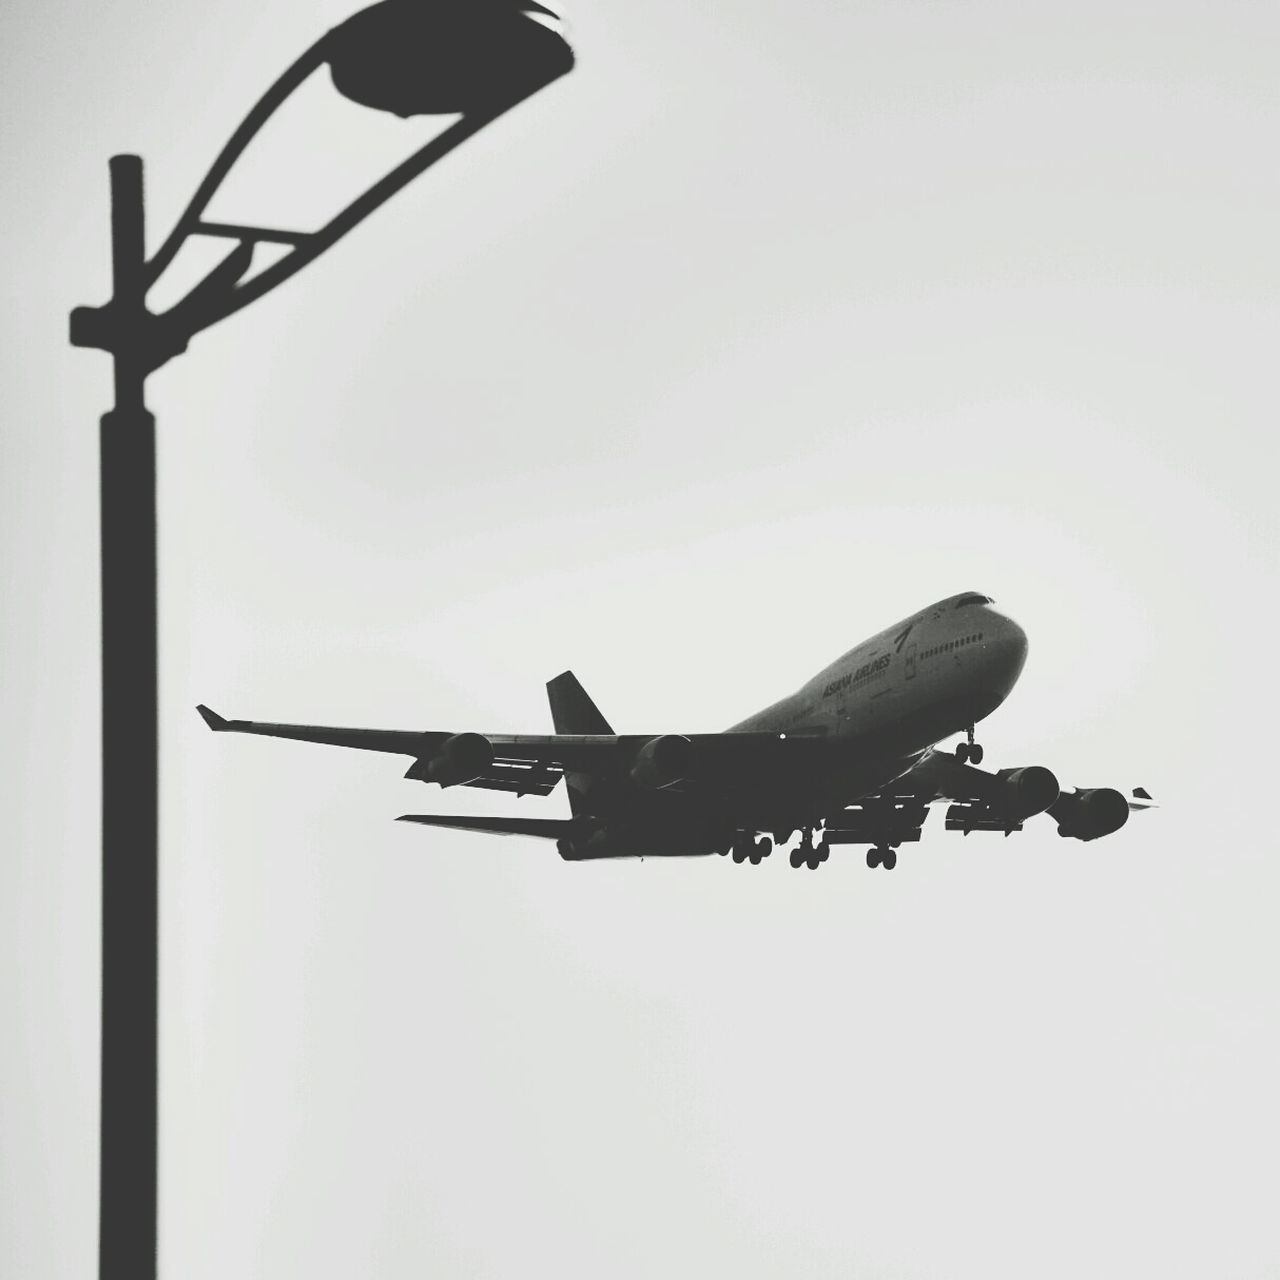 Korea Photos Airplane At The Airport Blackandwhite Silhouette In The Terminal